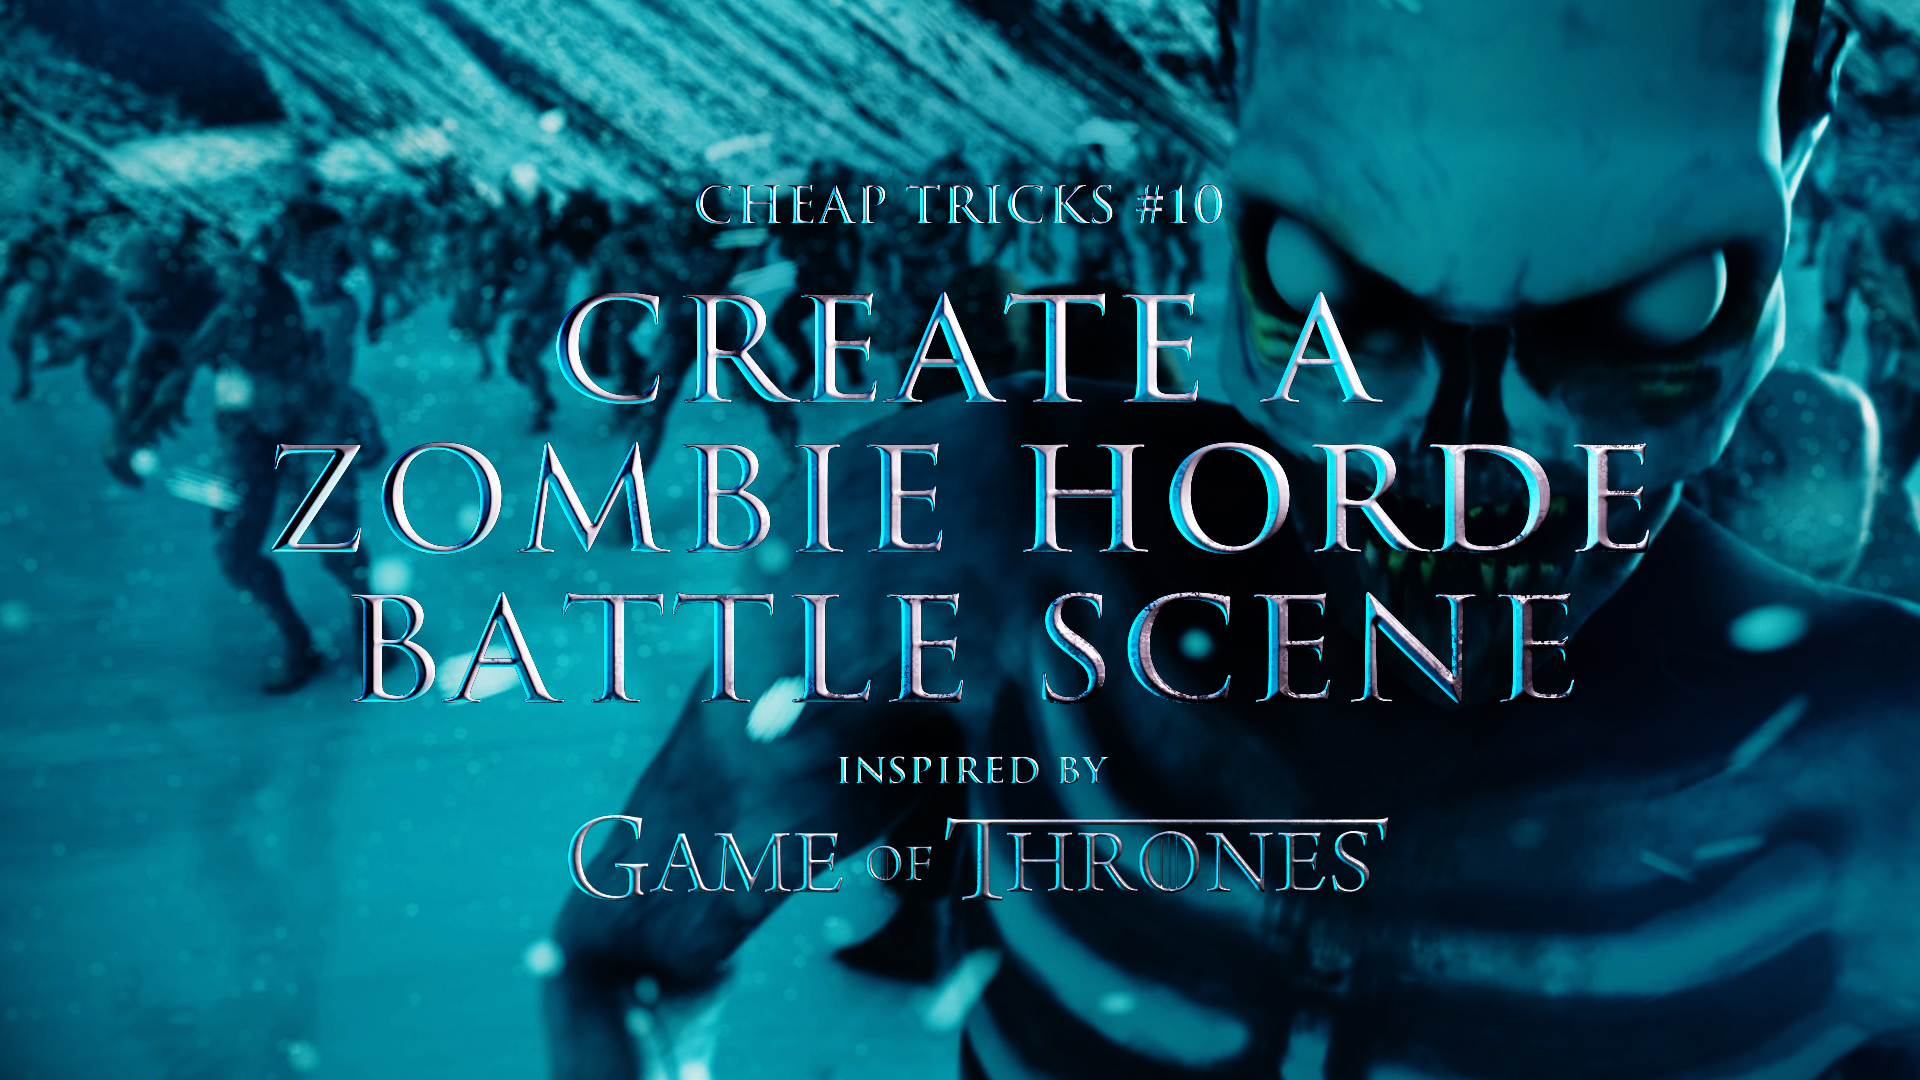 Cheap Tricks #10 | Create A Zombie Horde Battle Scene - Game of Thrones VFX Part 3